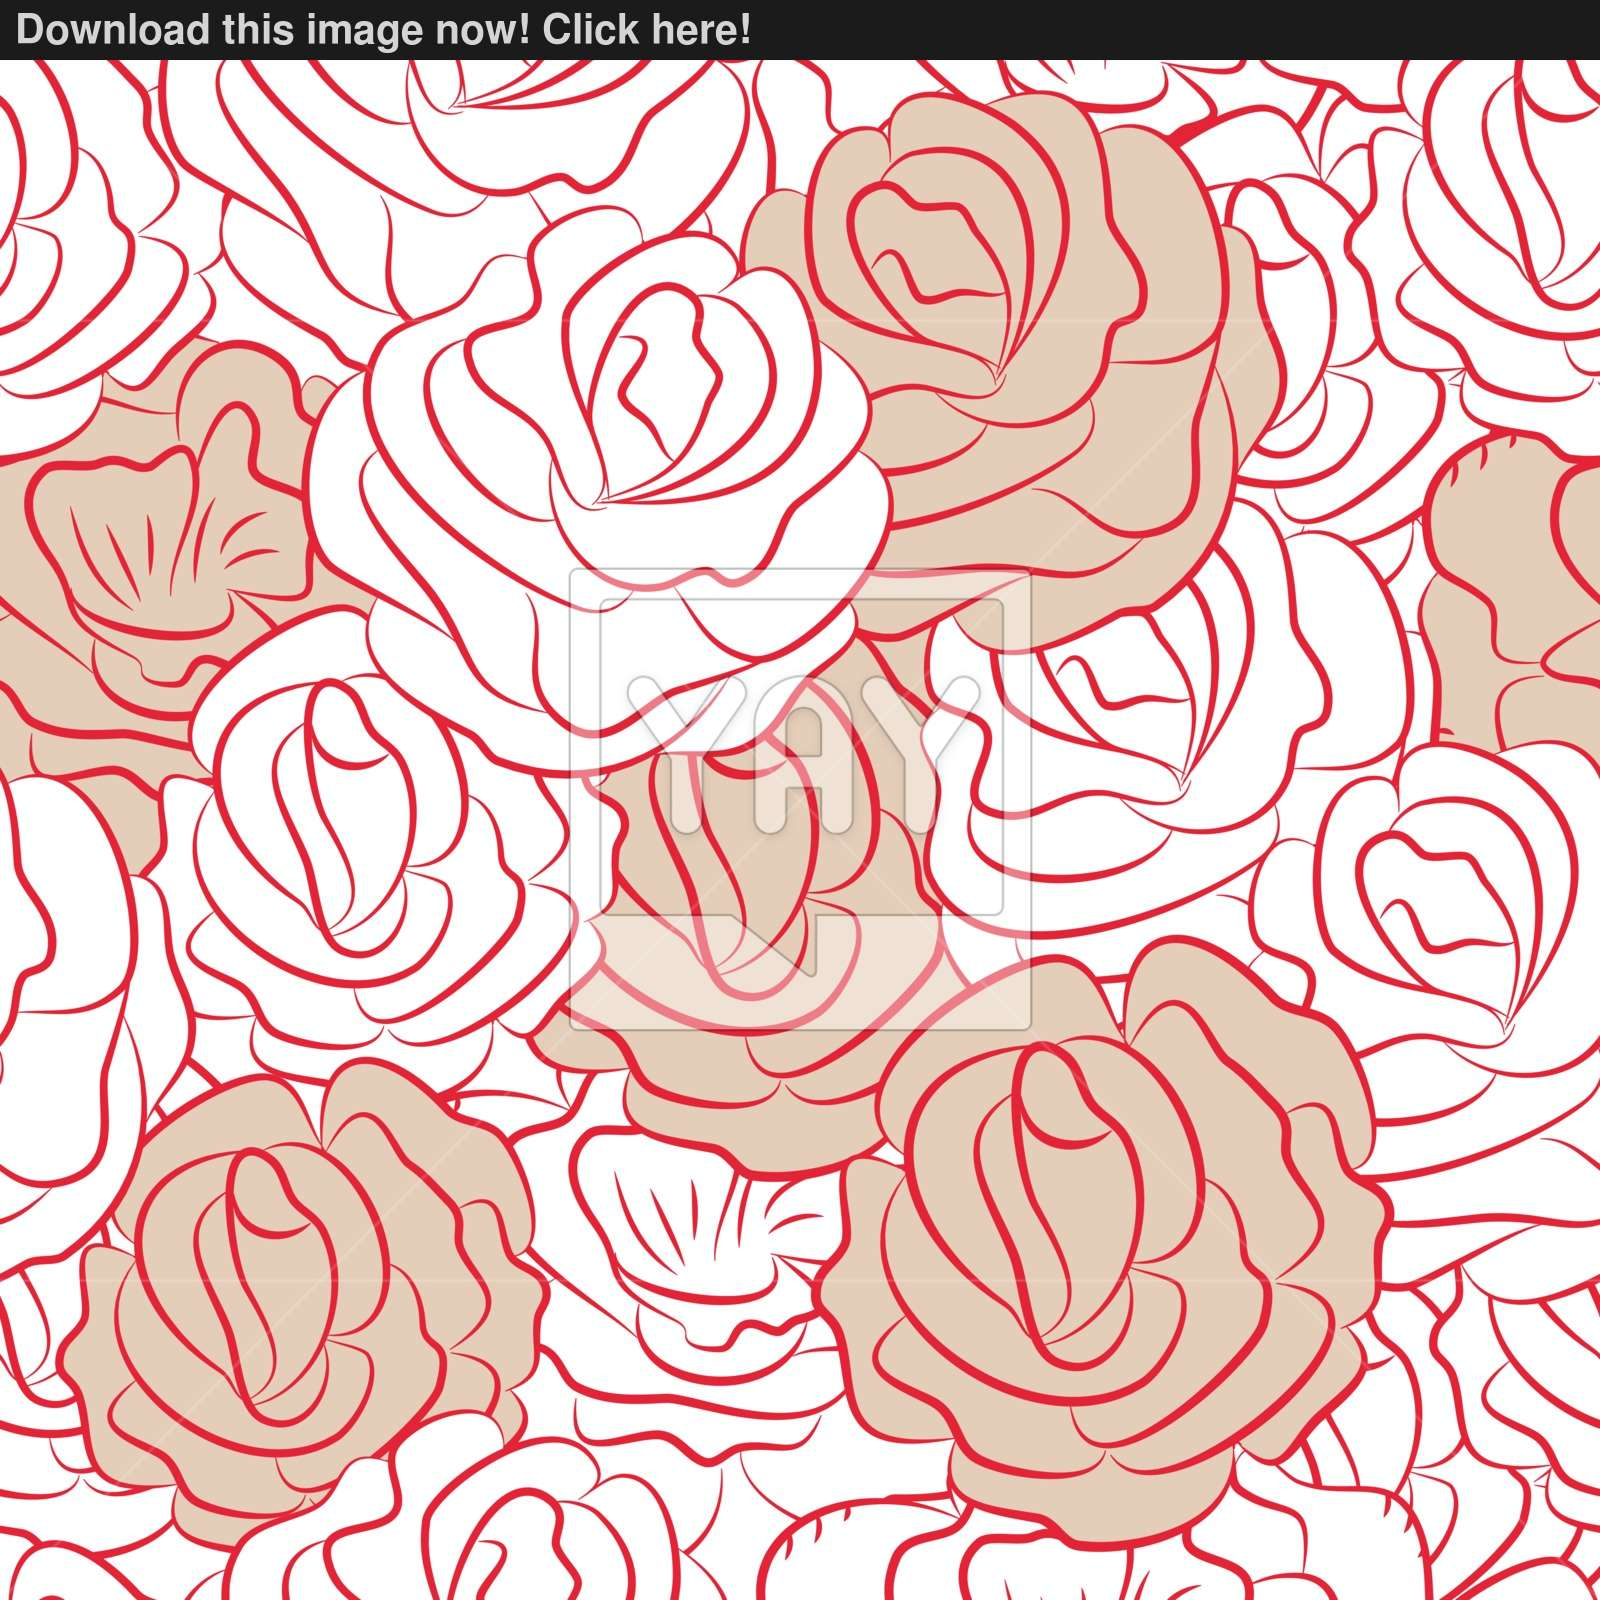 1600x1600 Elegant Flowers Seamless Pattern. Vector Illustration In Pastel